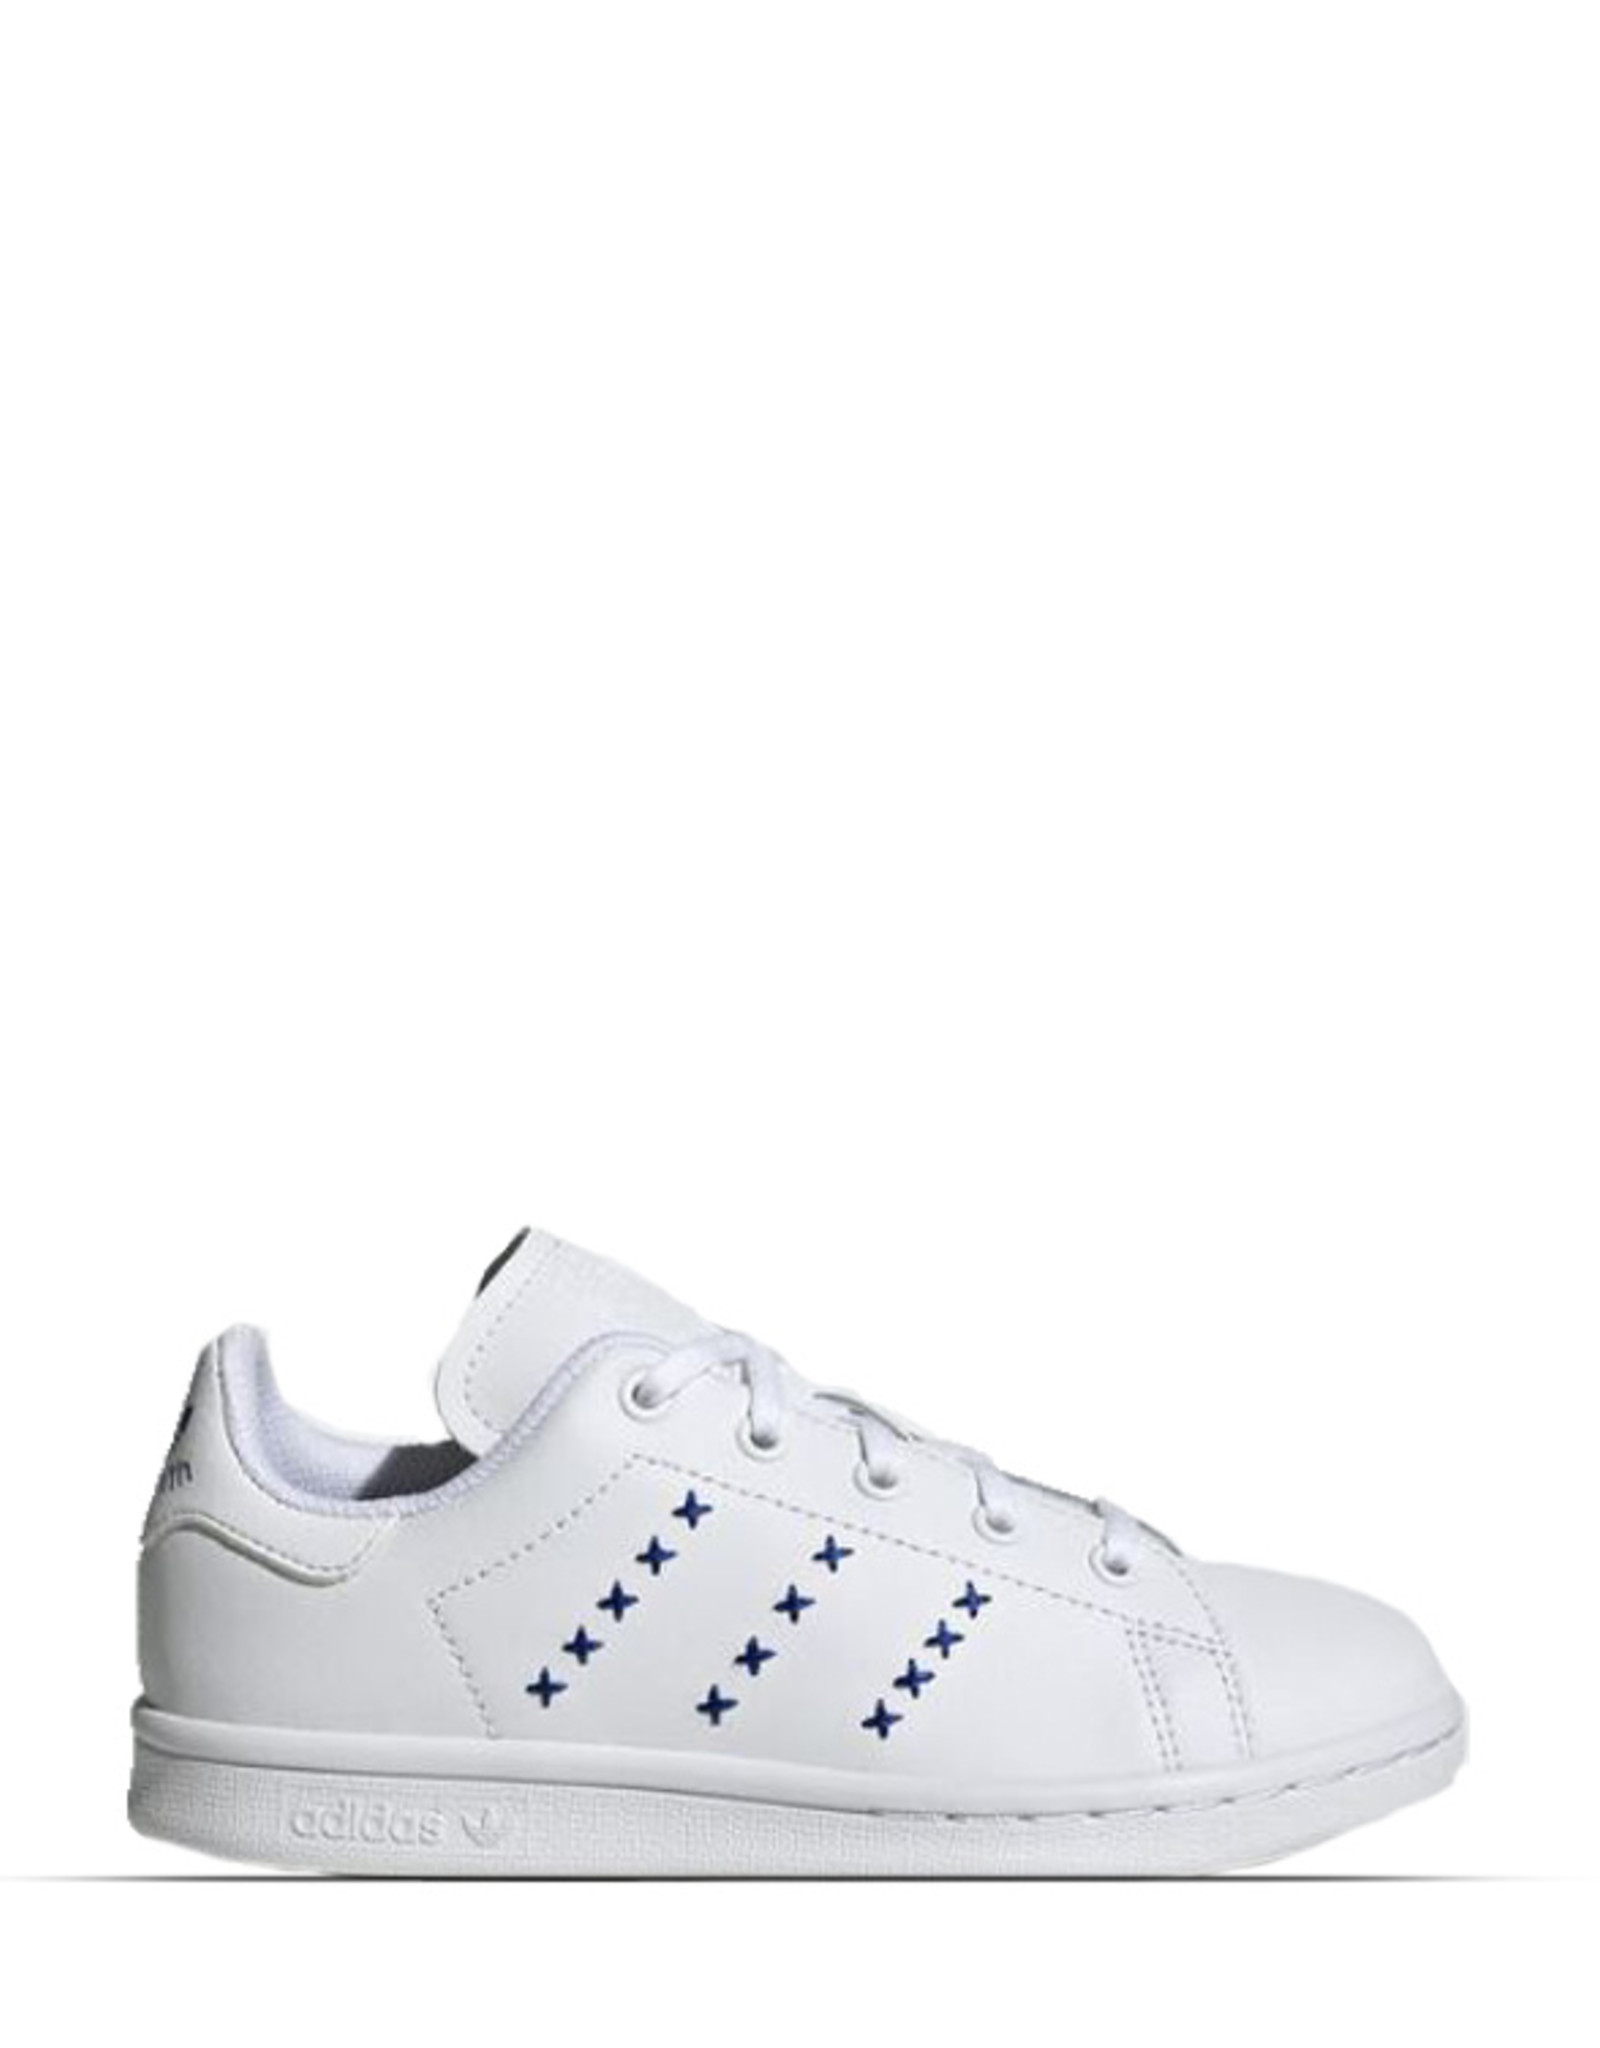 ADIDAS STAN SMITH  EMBROIDERED BLUE DETAILS